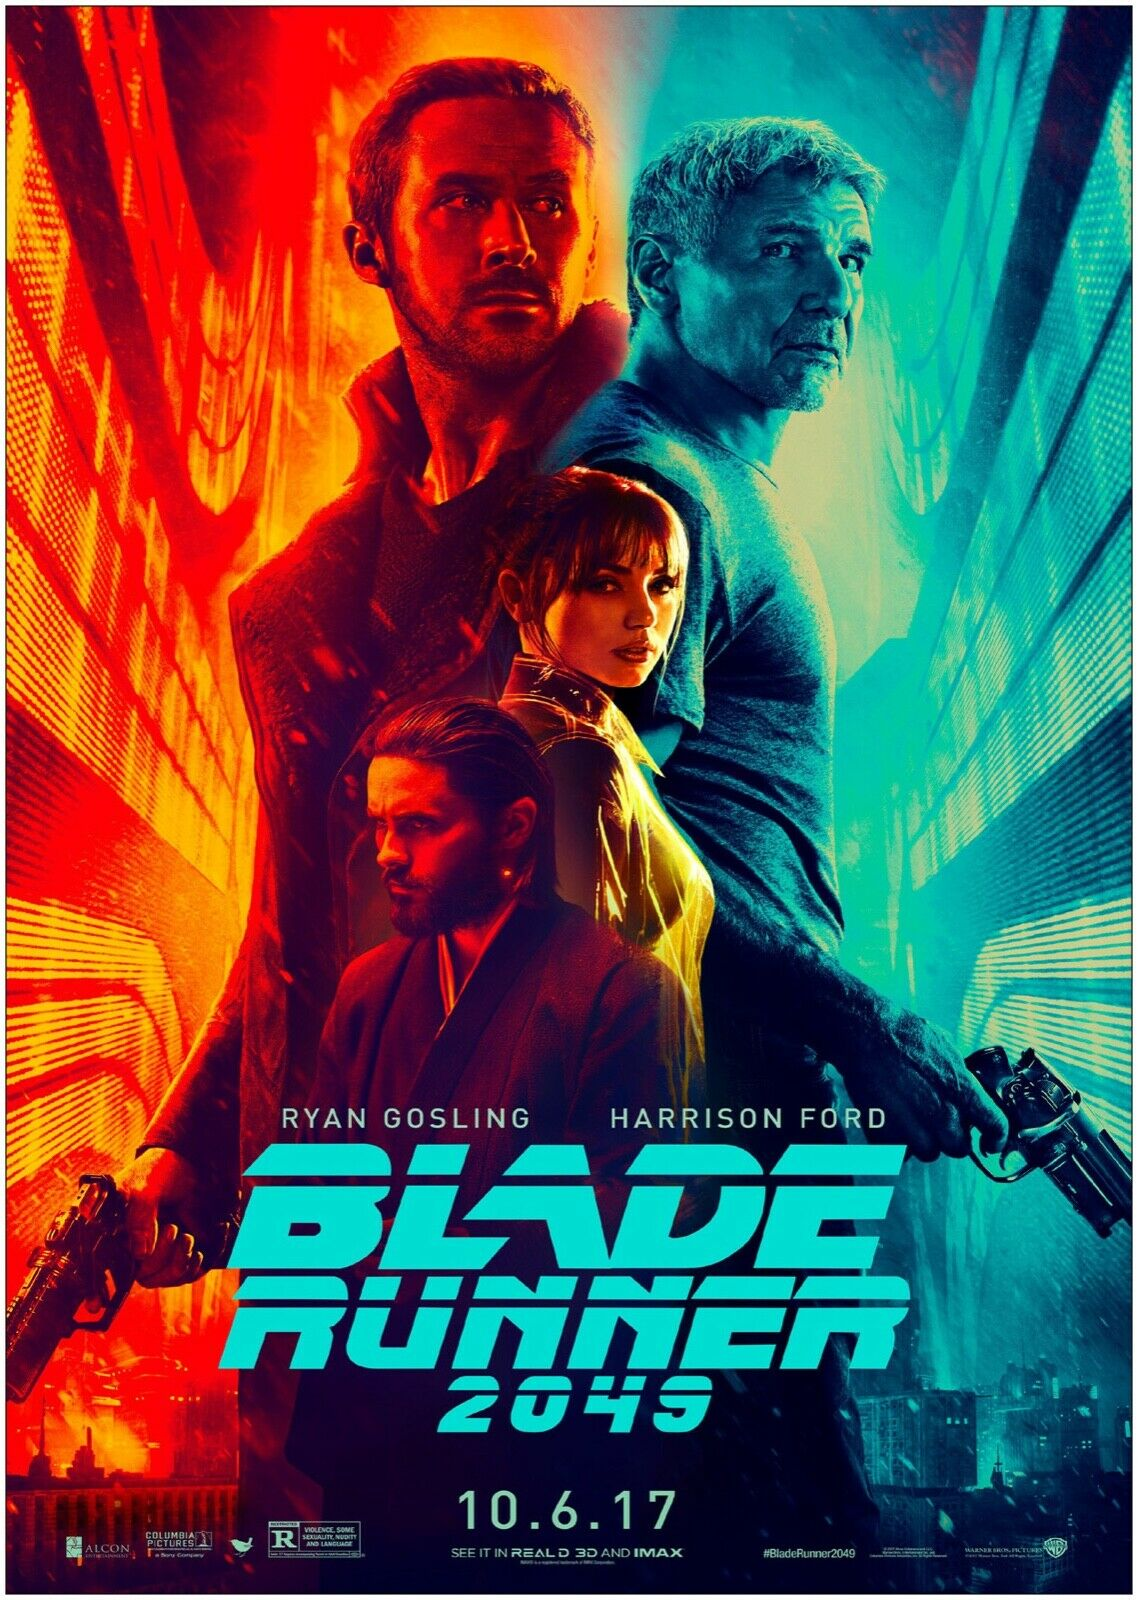 Blade Runner 2049 Movie Large CANVAS Art Print A0 A1 A2 A3 A4